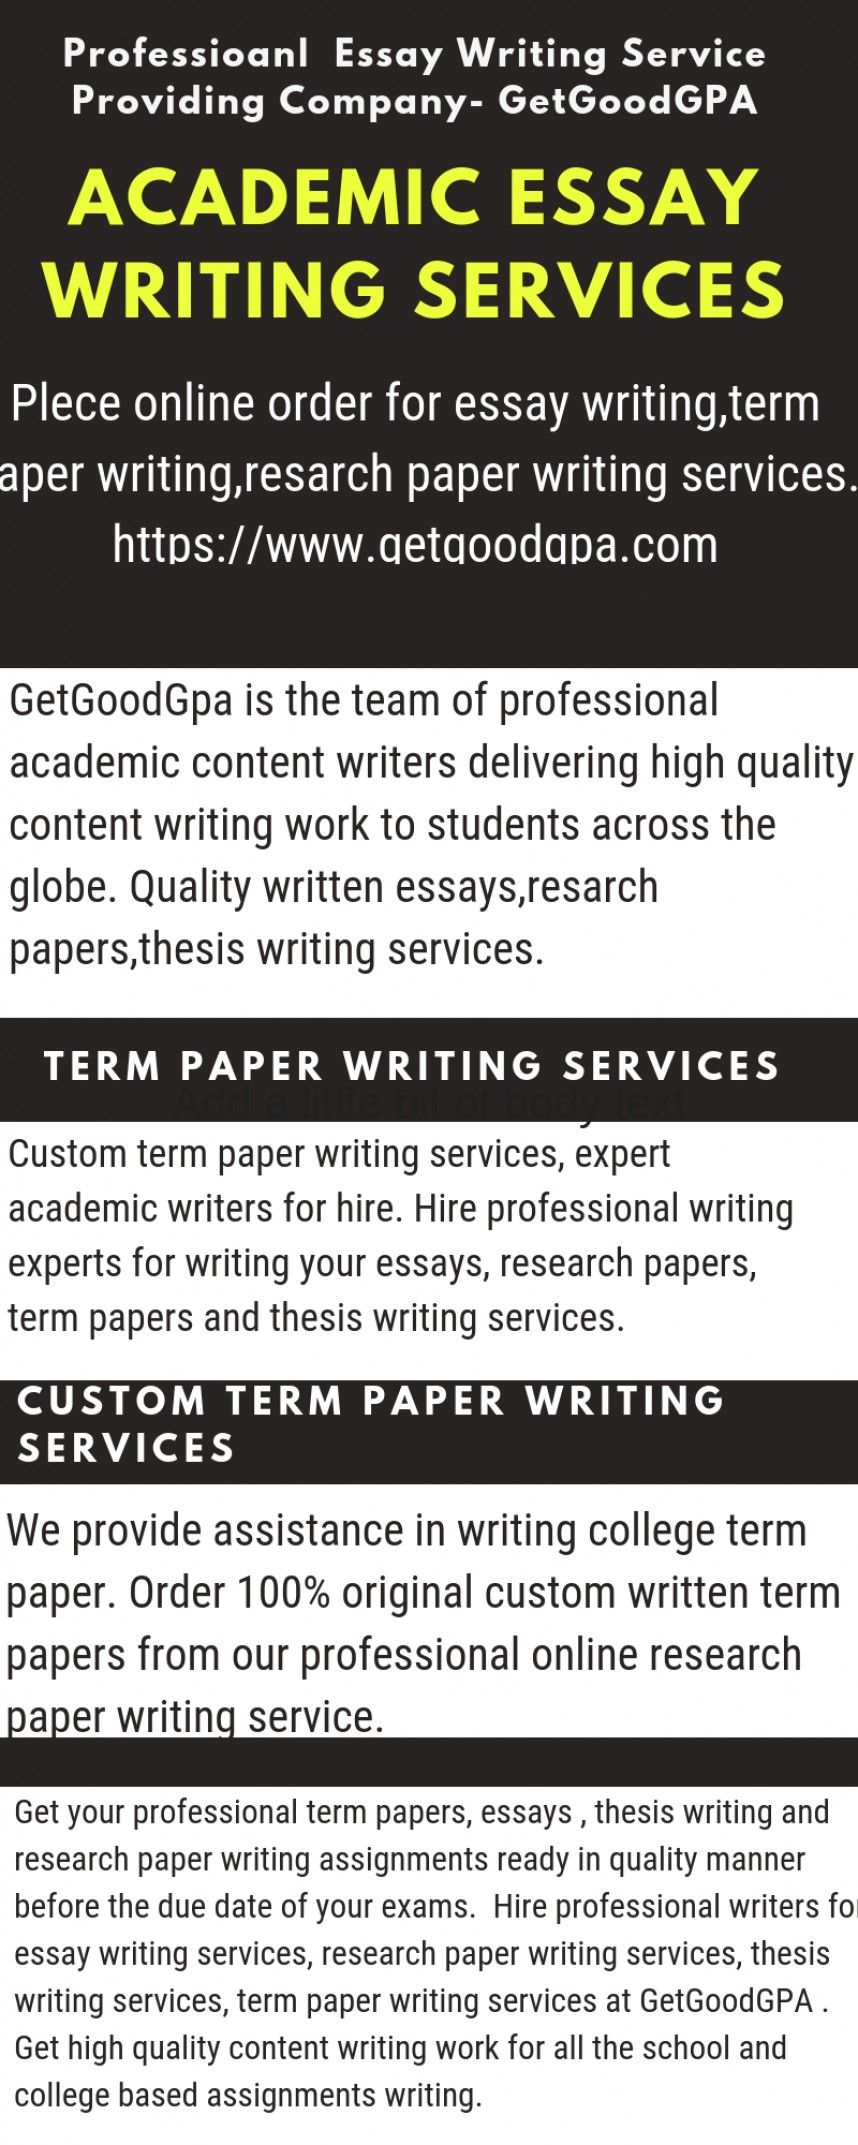 003 Research Paper Custom Term Writing Magnificent Service Services